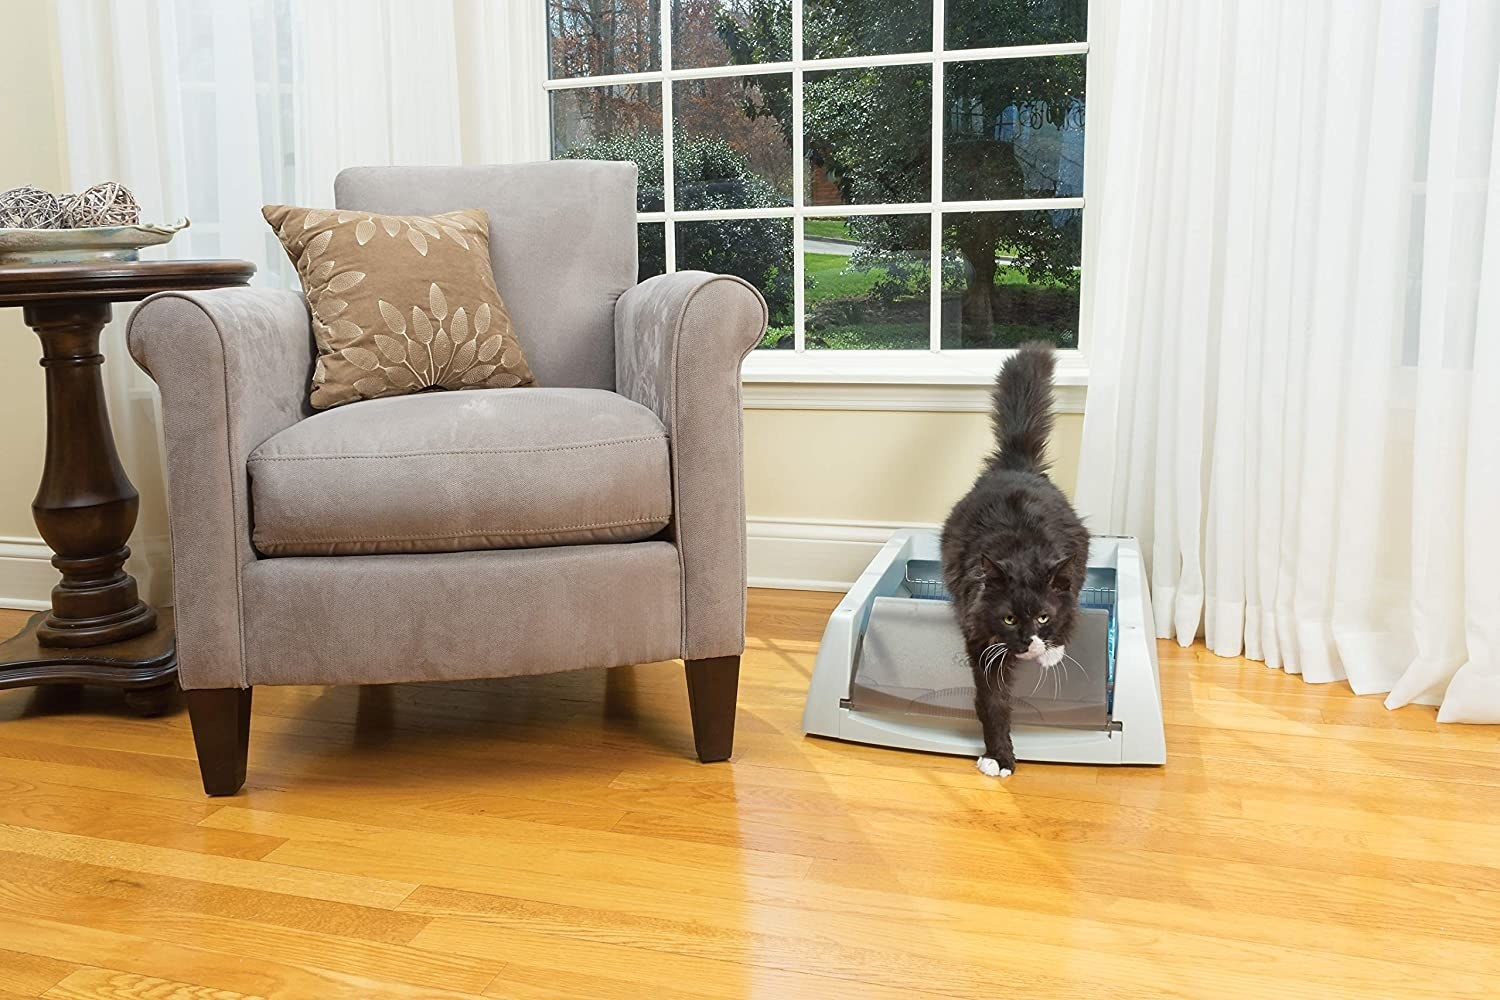 A cat stepping out of the litter box beside a chair